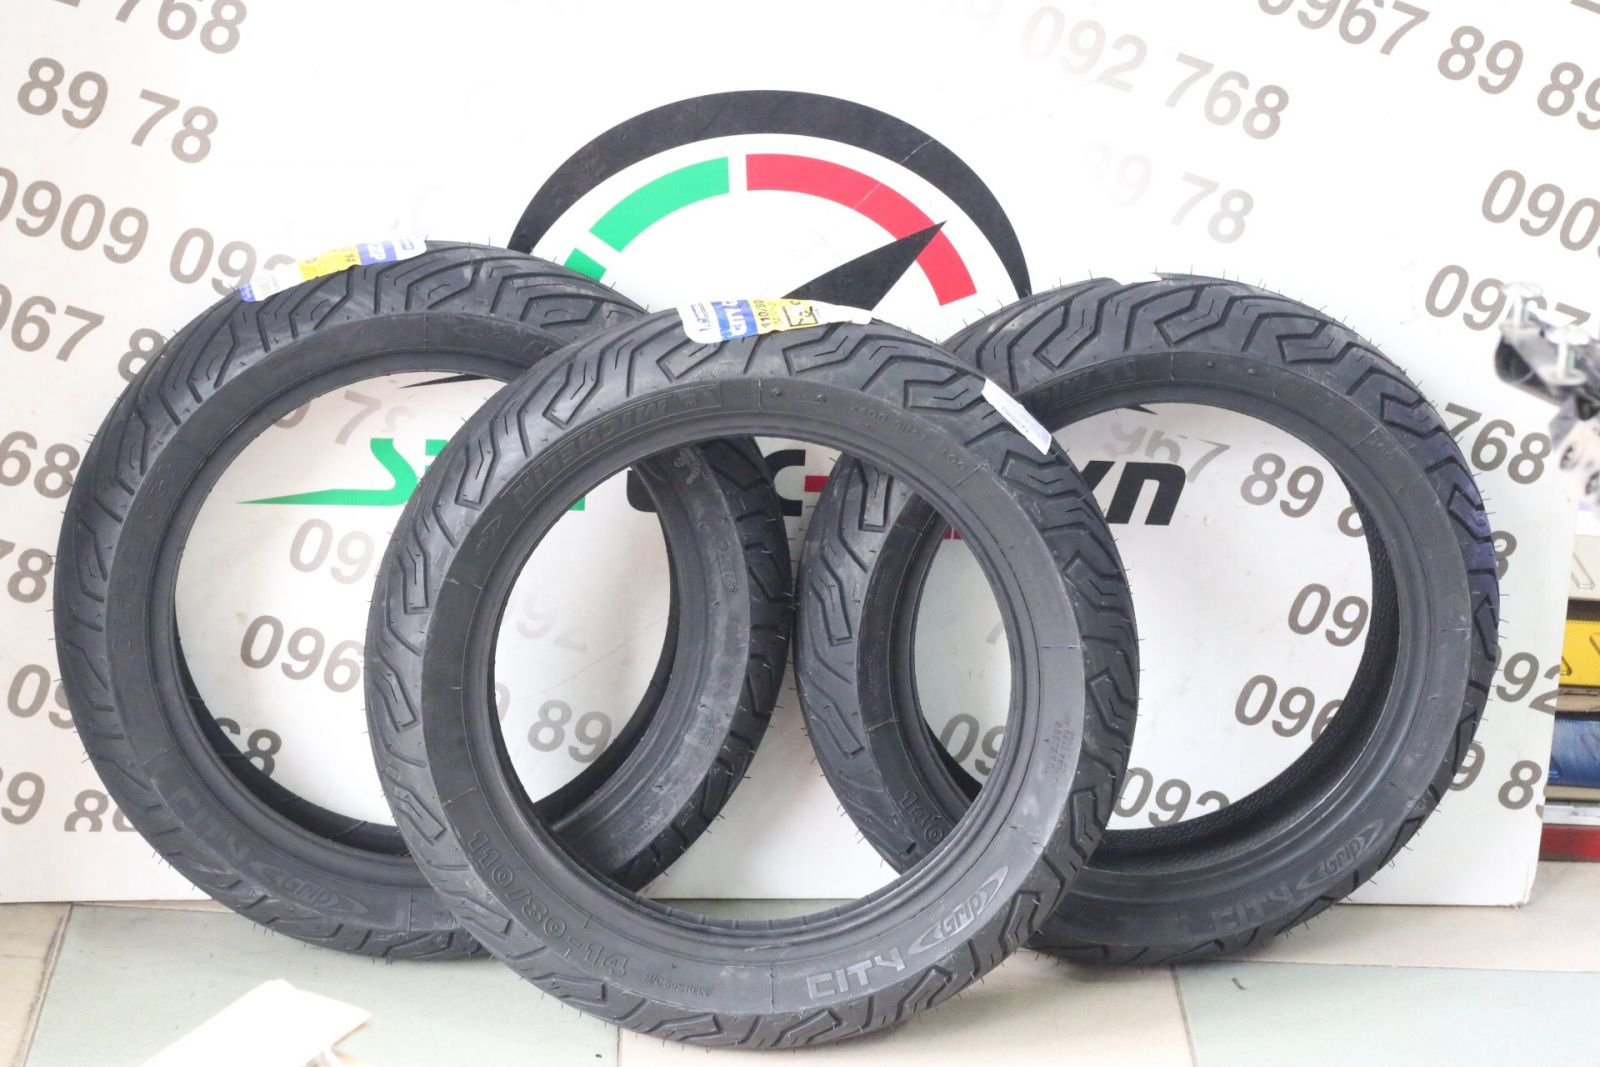 Vỏ Micherlin gai City Grip size 14 STD-649 Michelin